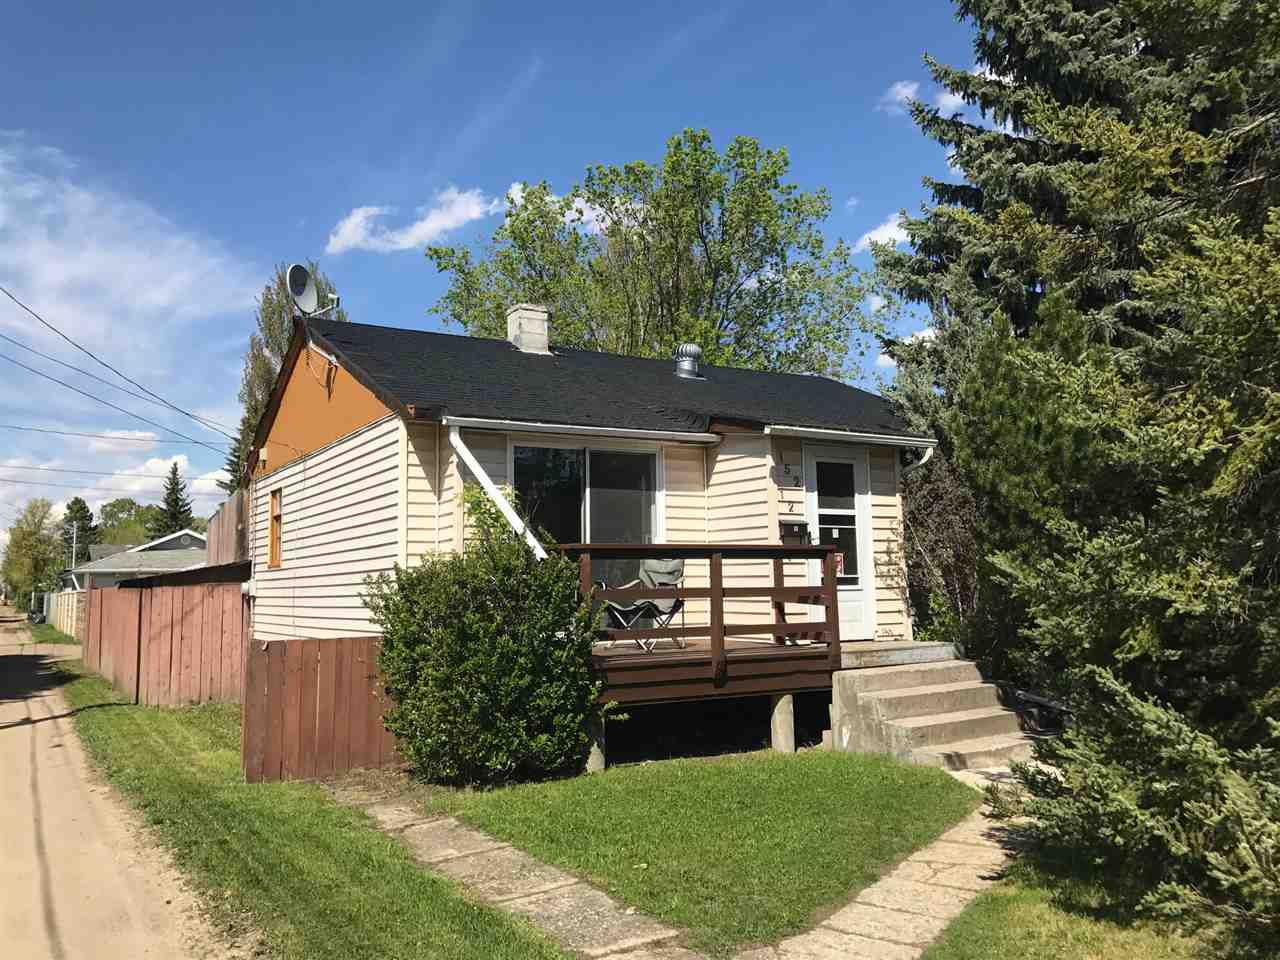 Main Photo: 15212 98 Avenue NW in Edmonton: Zone 22 House for sale : MLS® # E4060259